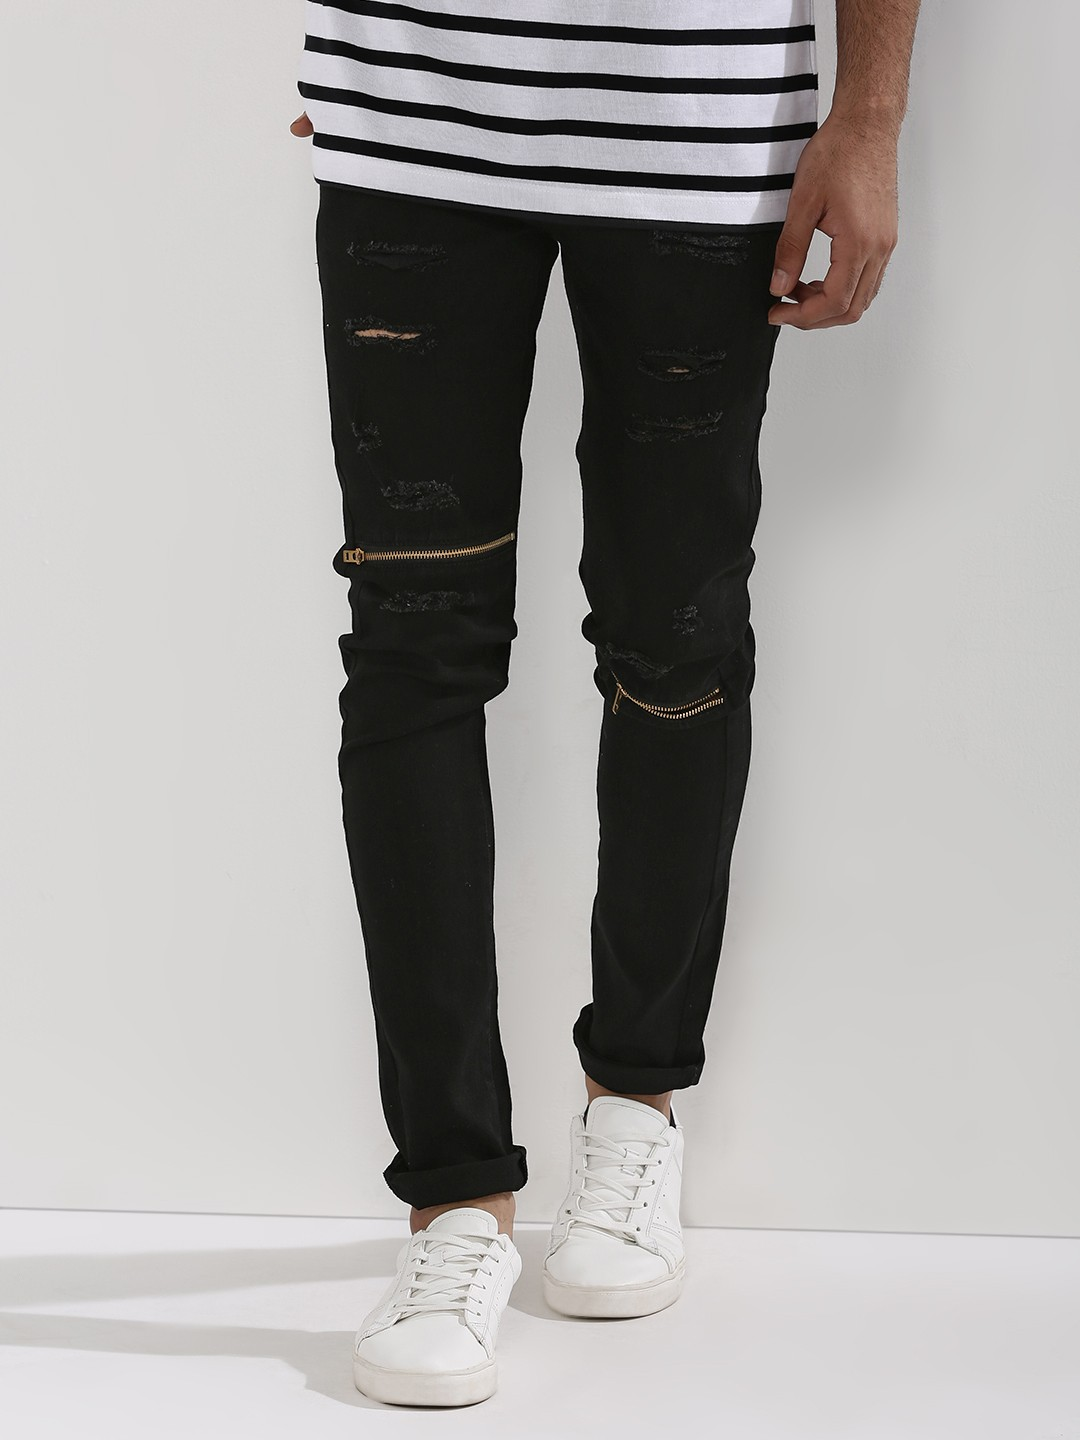 Kultprit Slim Fit Jeans With Rips - Ripped Jeans : Buy Ripped Jeans For Men & Women Online In India